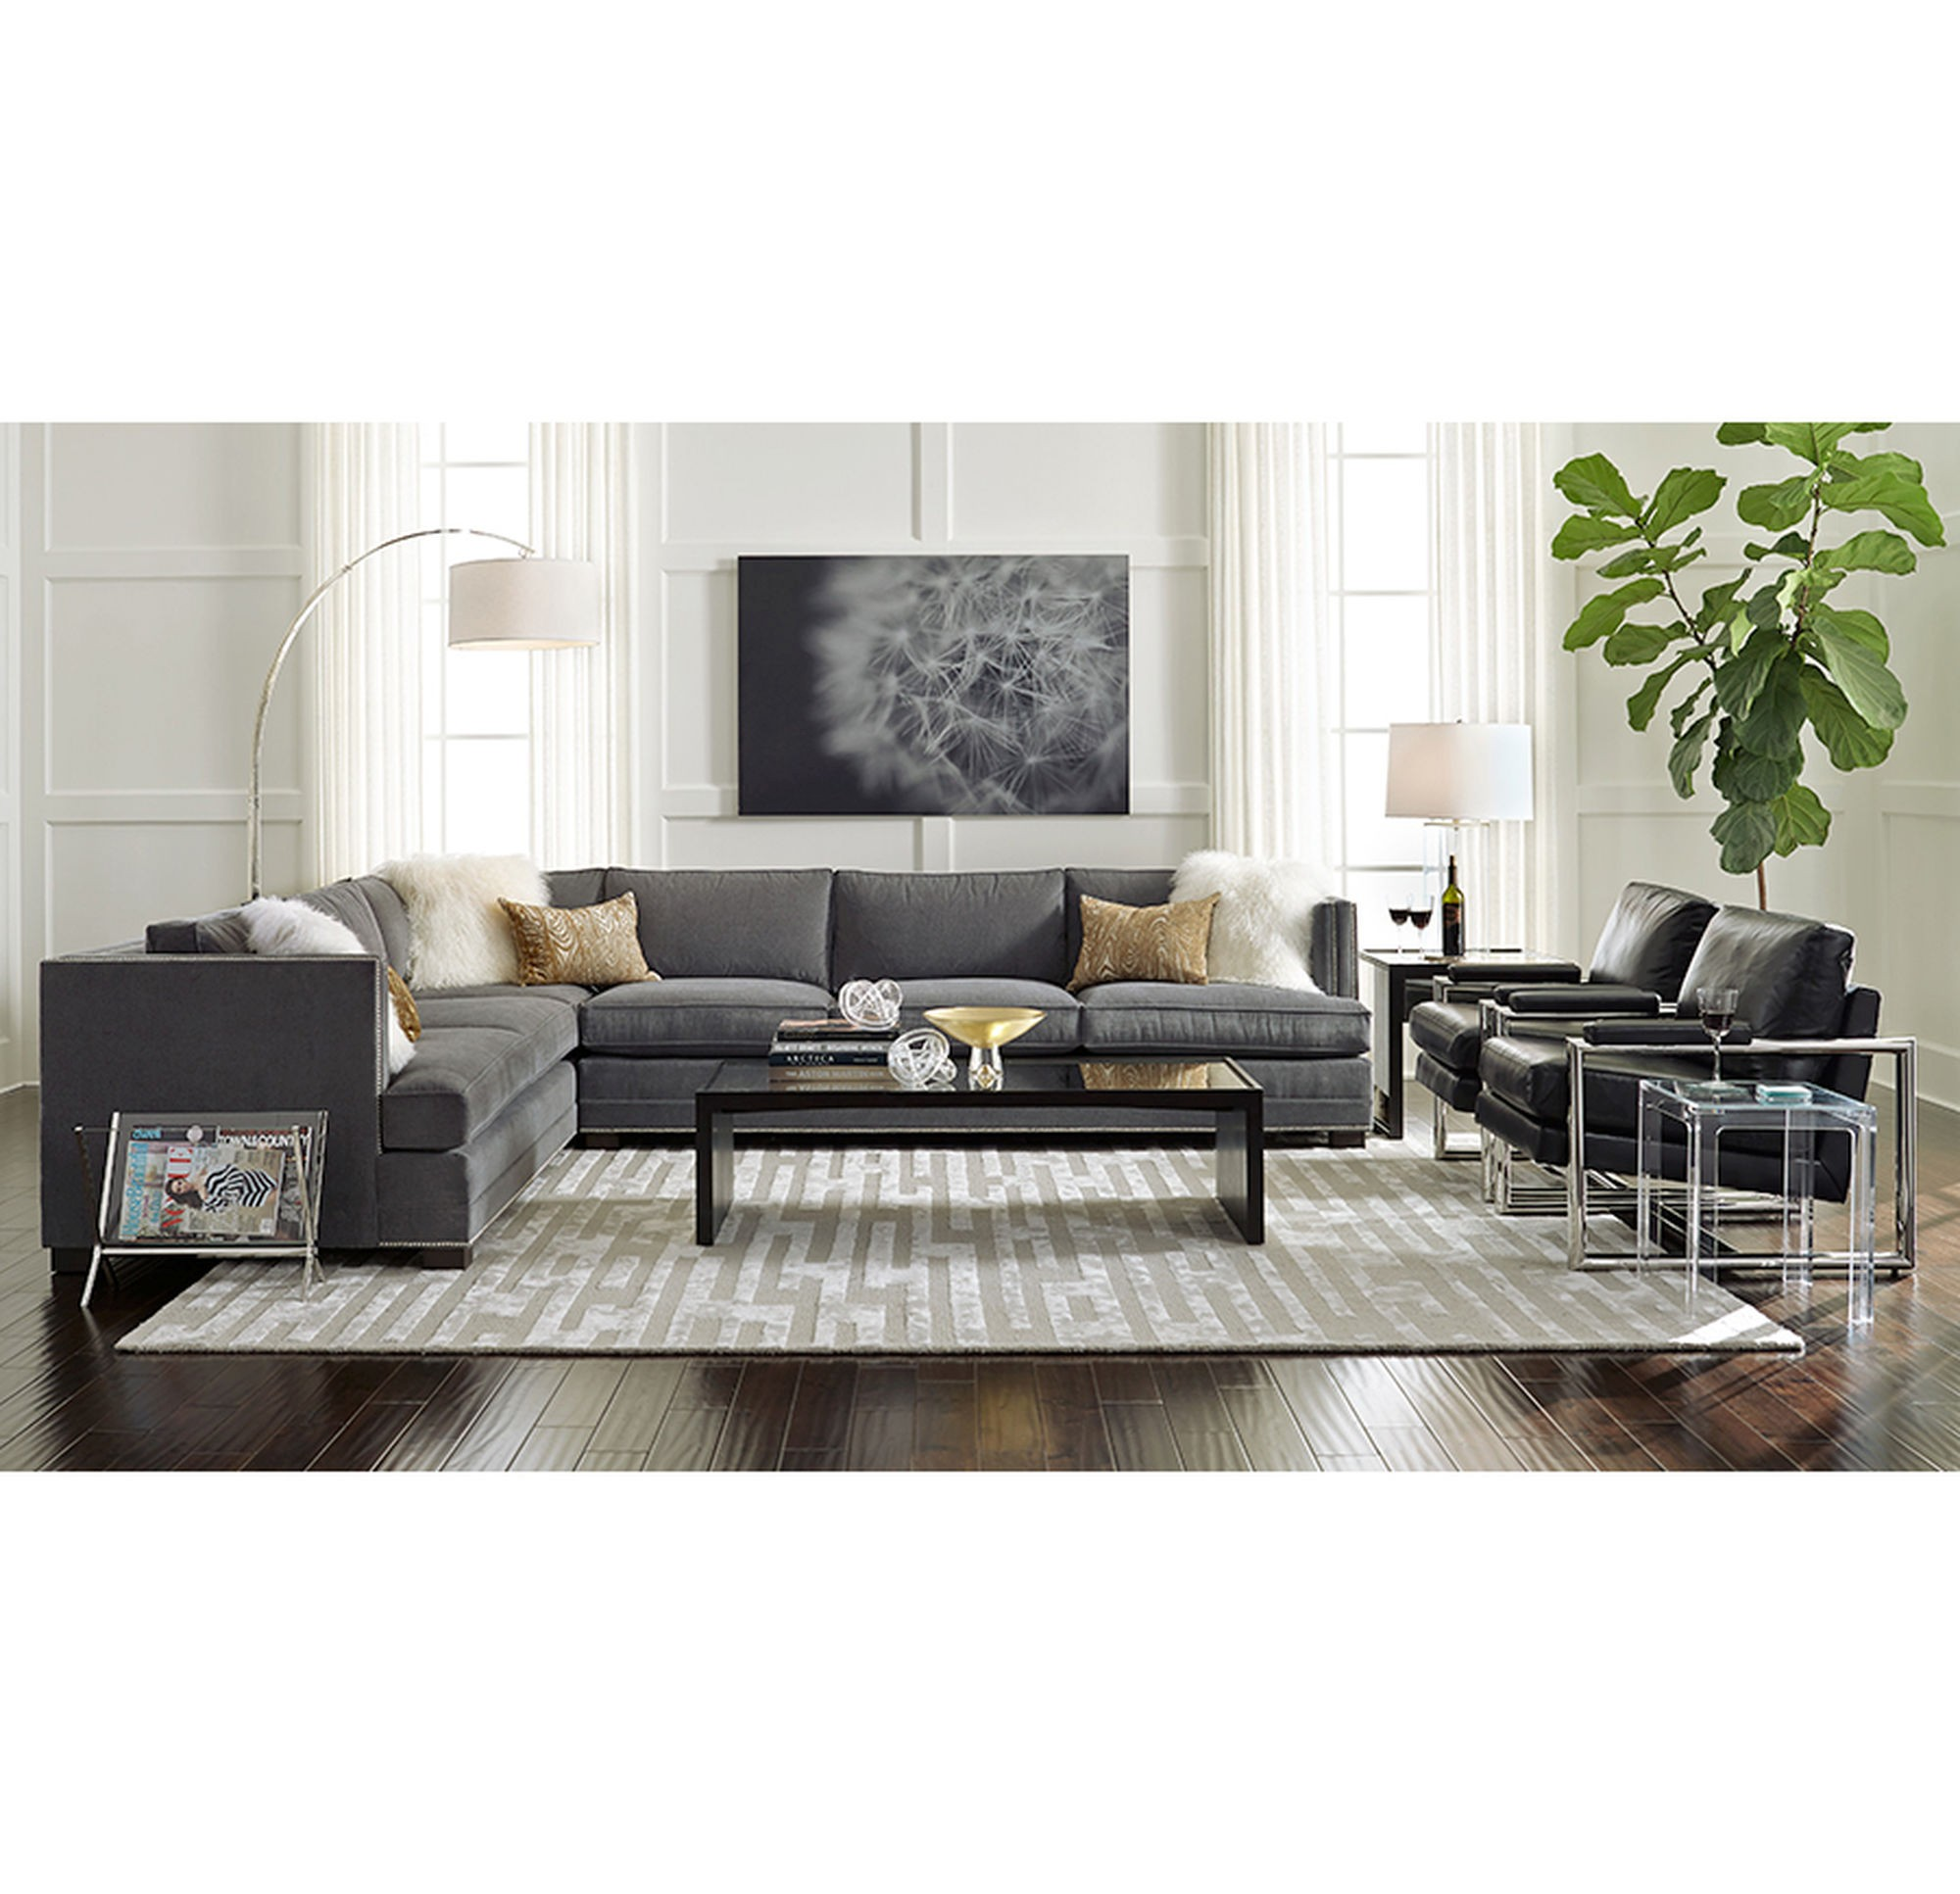 mitc gold hunter sofa cosmopolitan transitional double reclining by southern motion mitchell and bob williams reviews home the